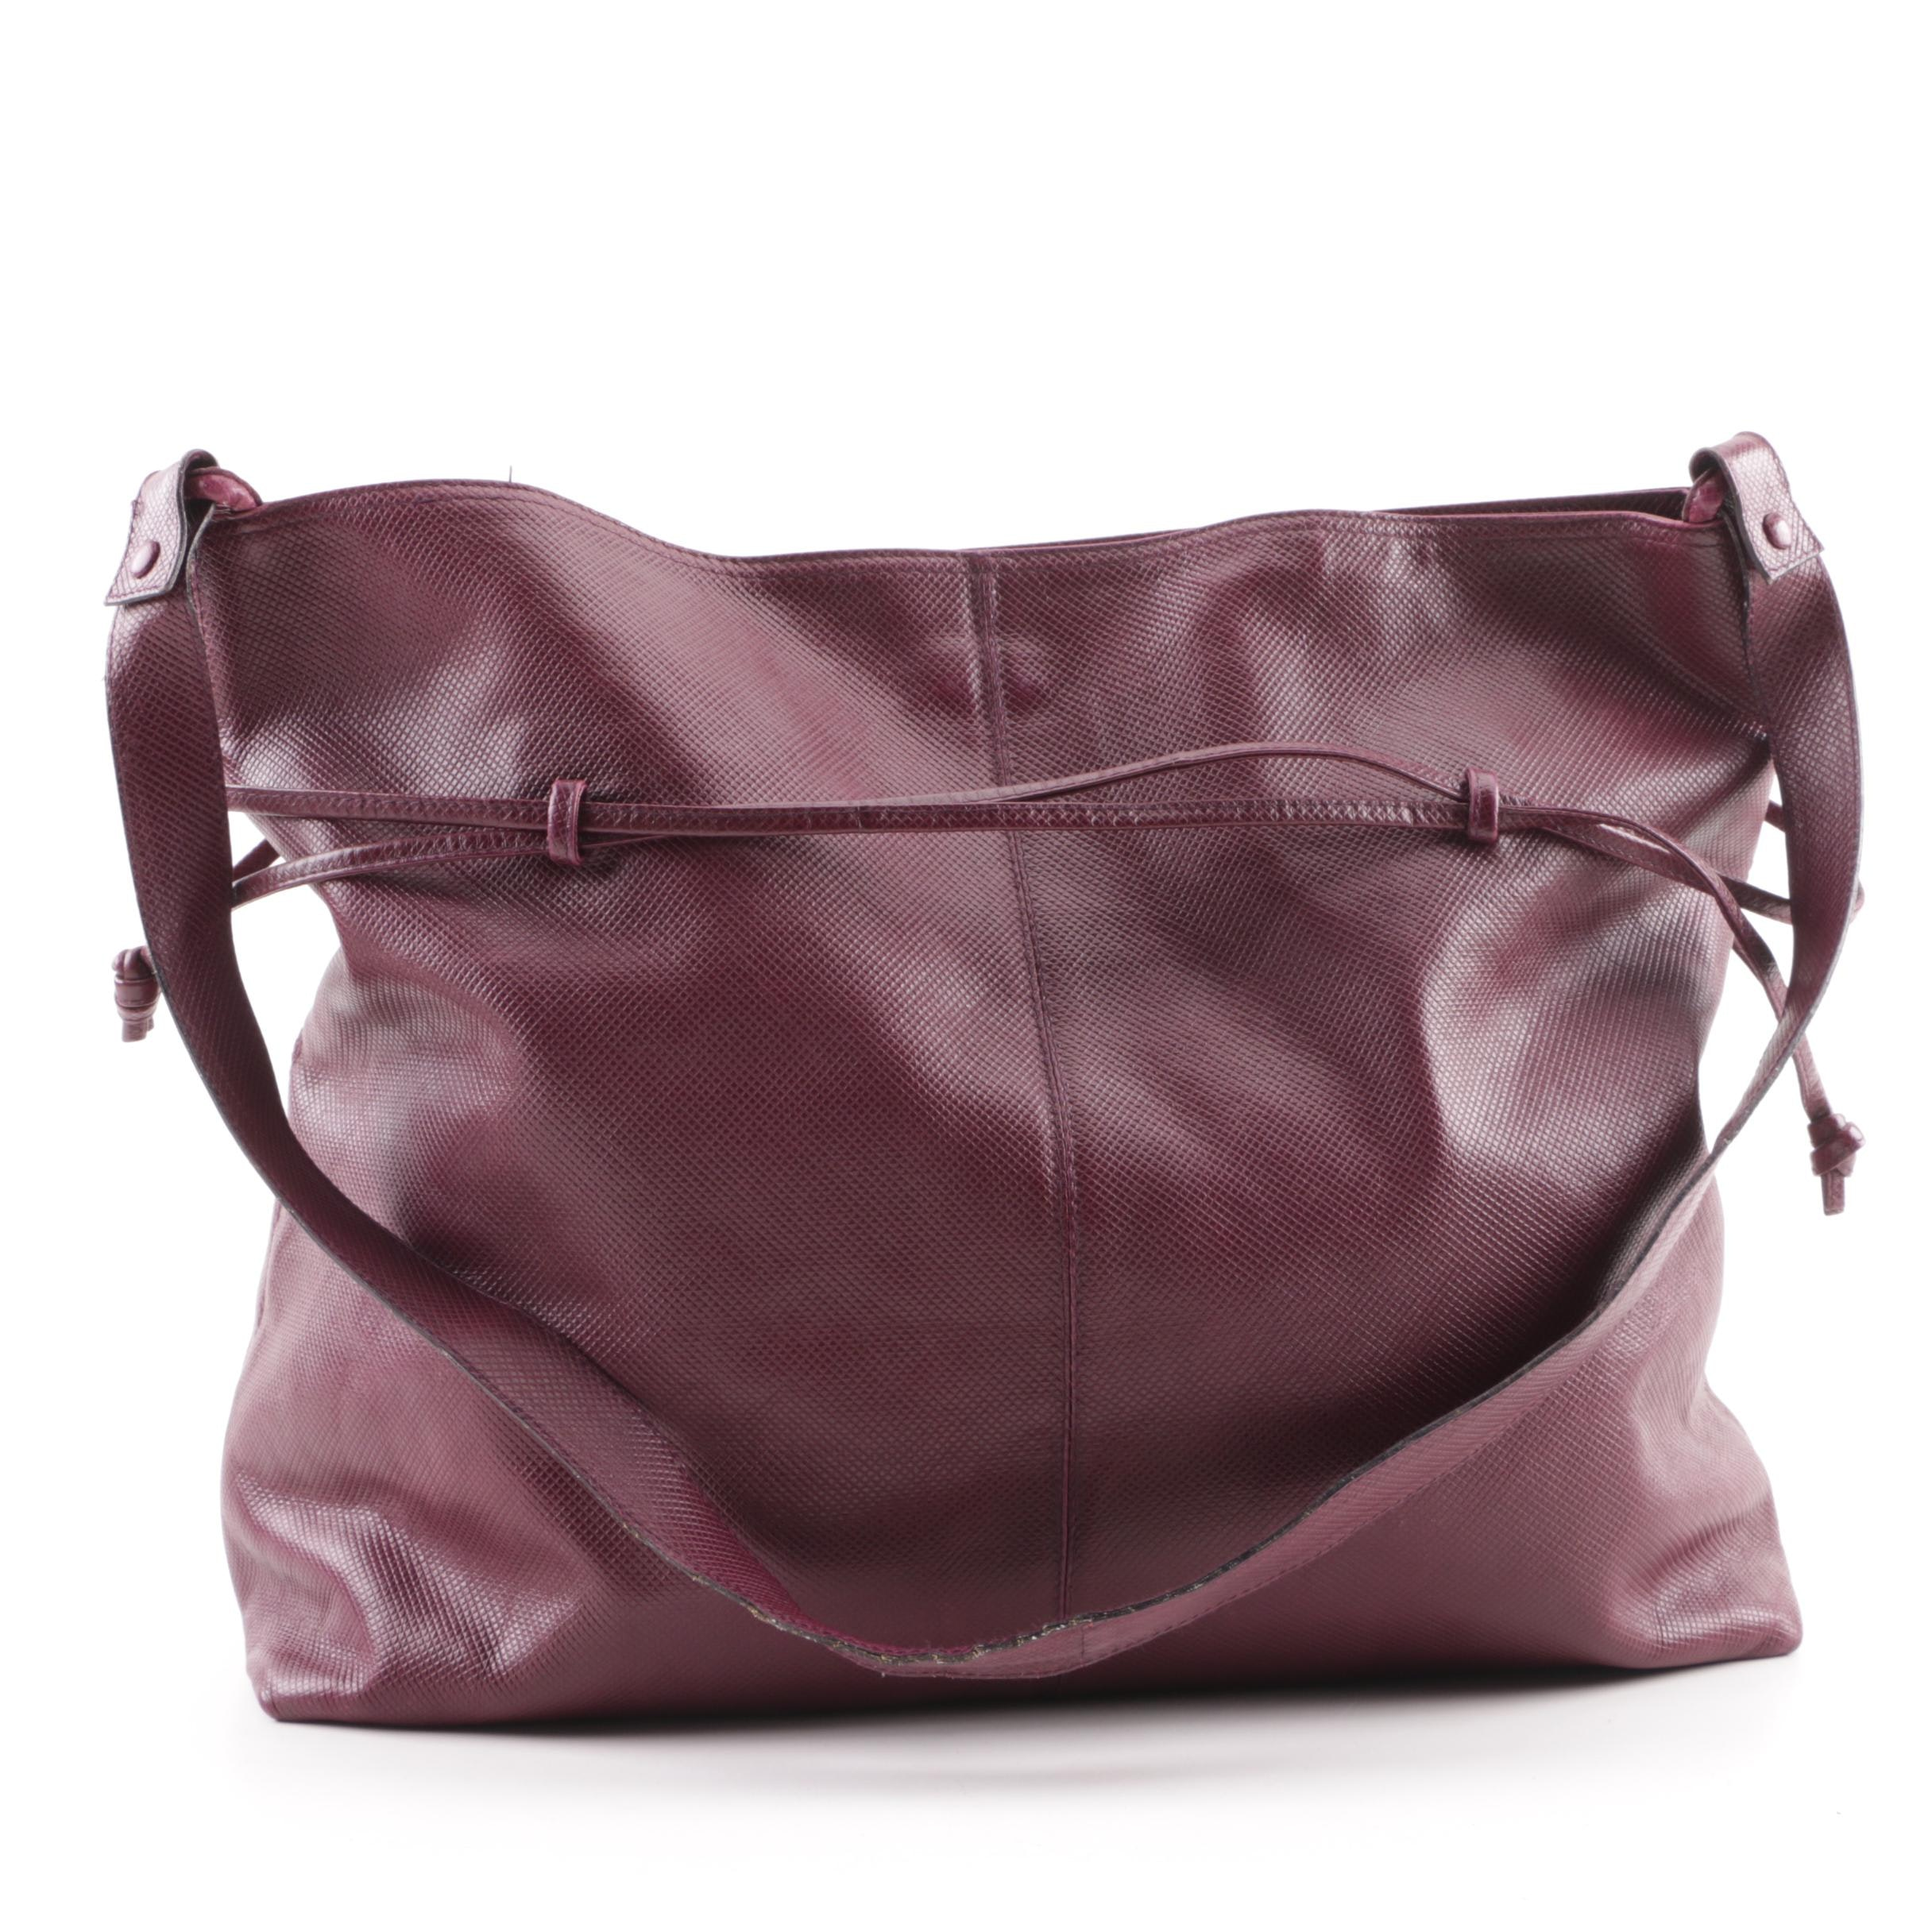 Bottega Veneta Embossed Oxblood Leather Shoulder Bag